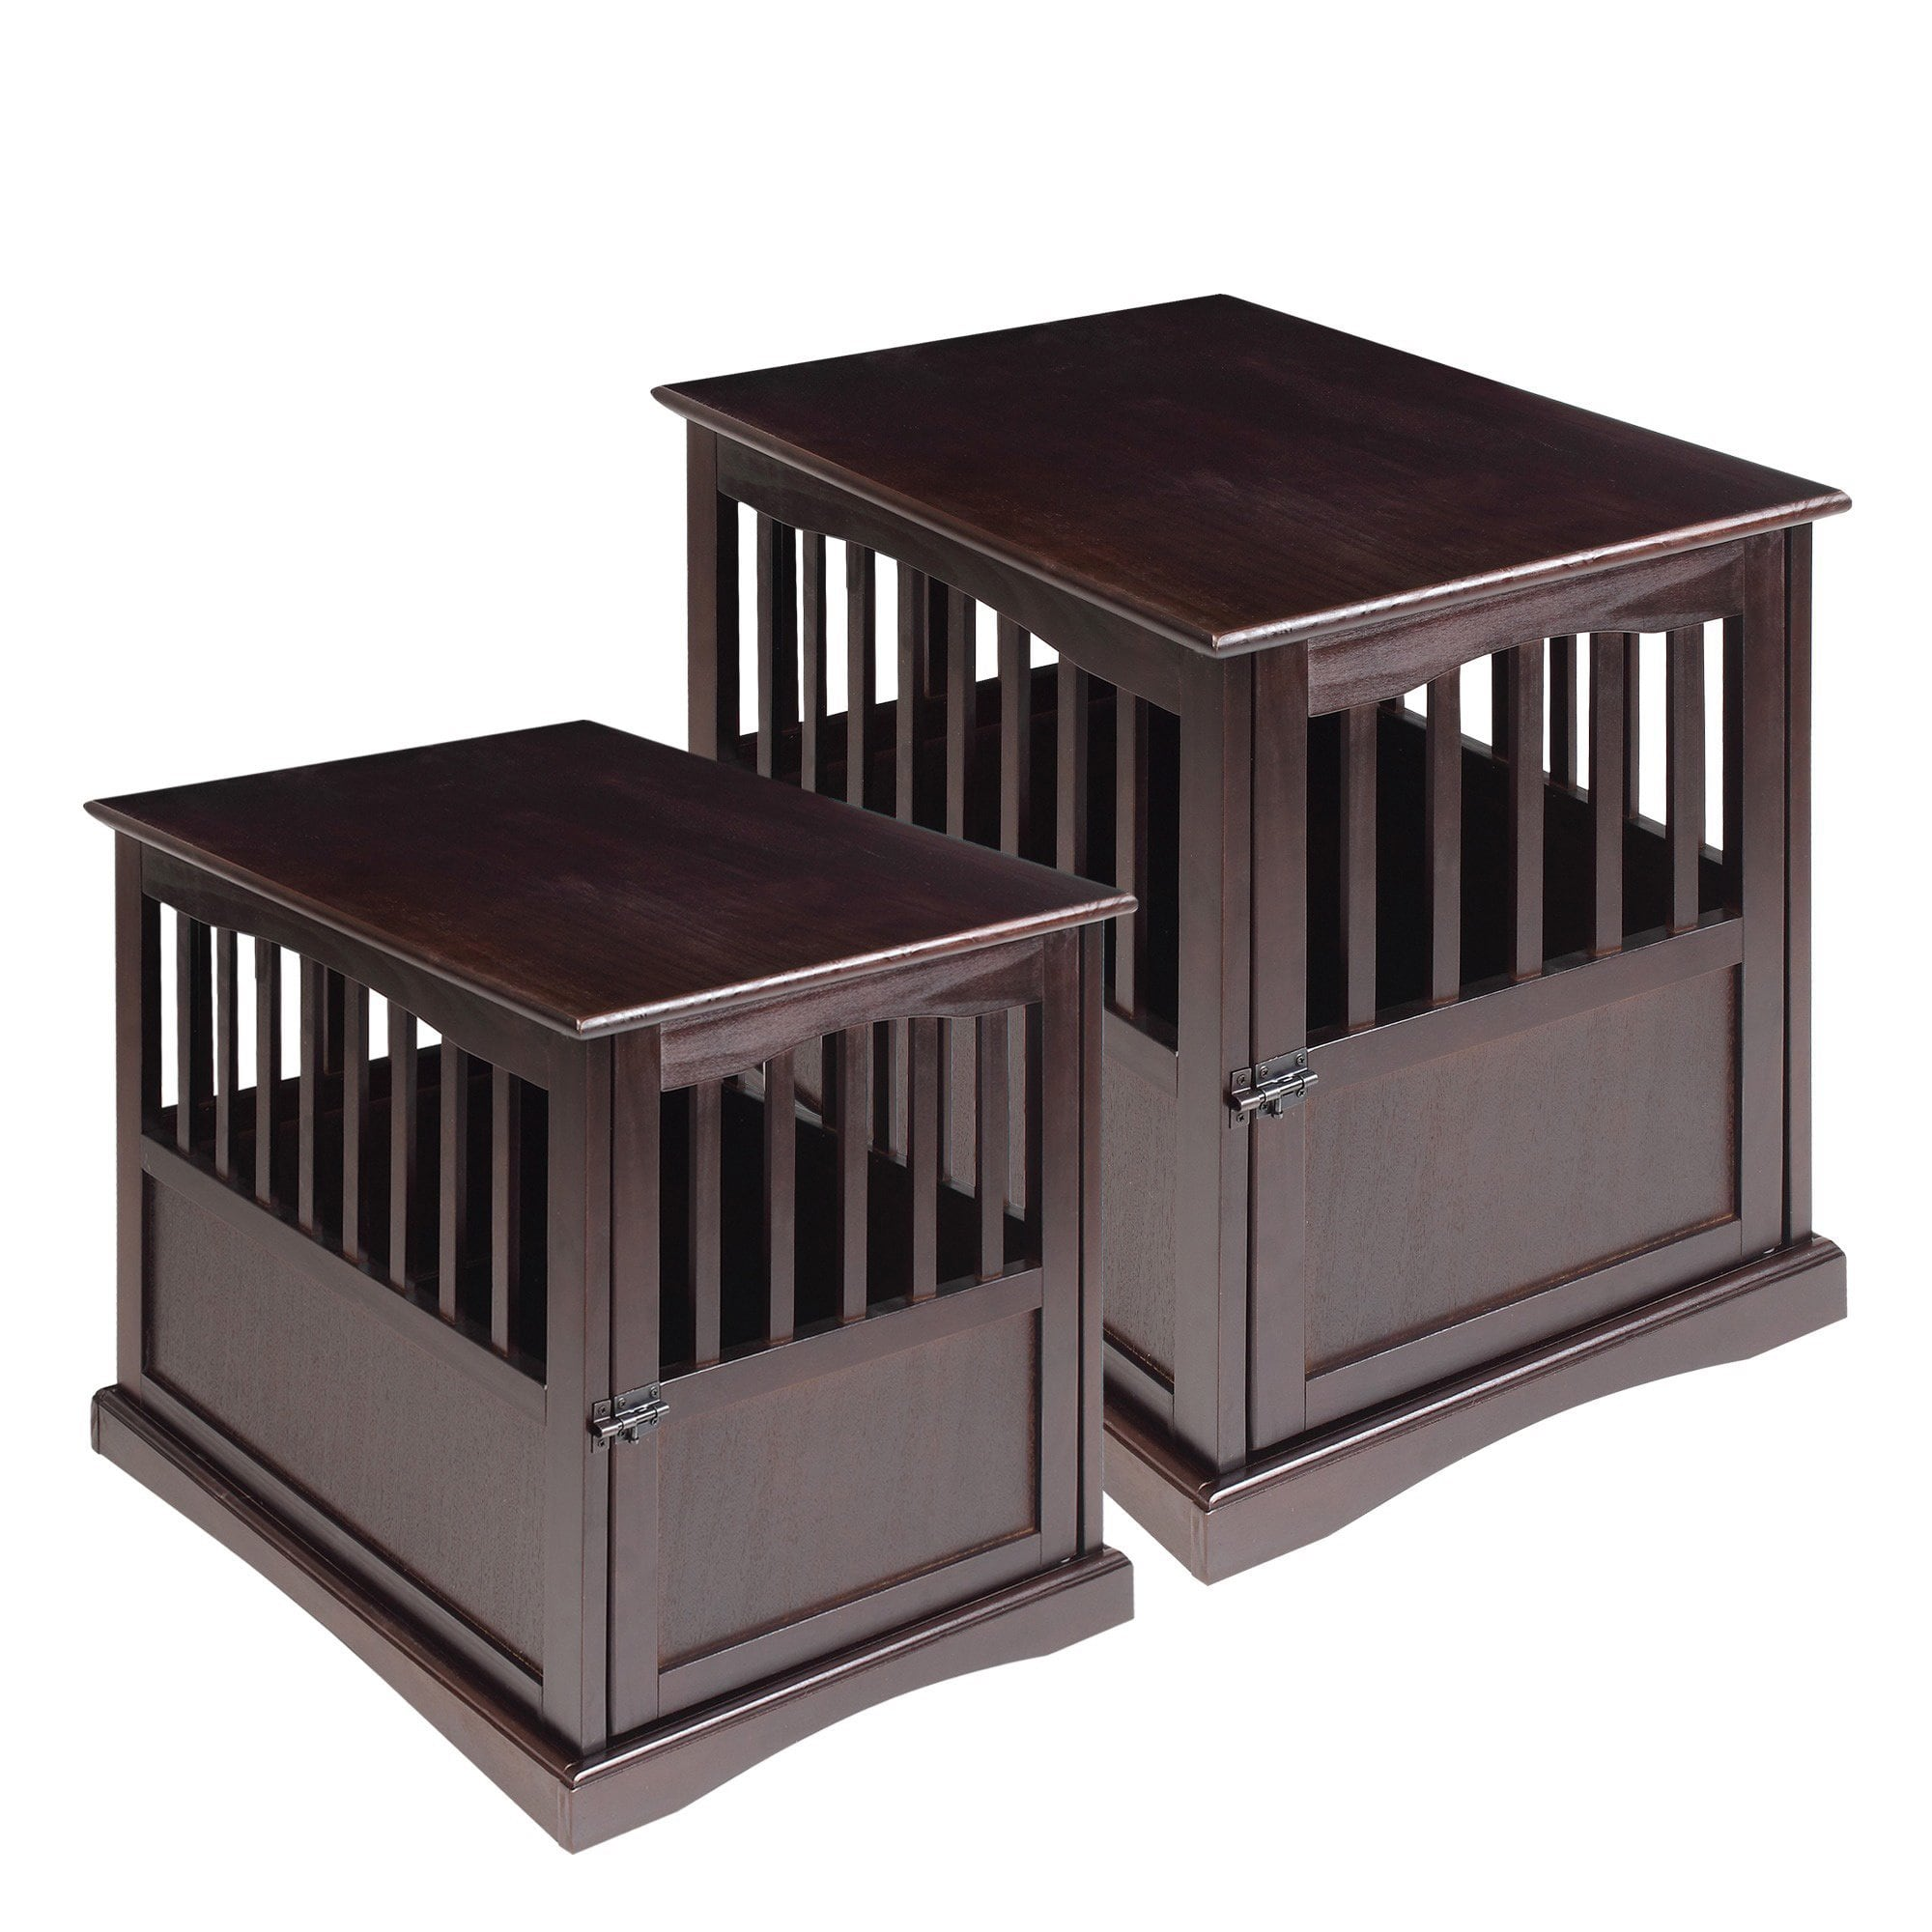 wooden pet crate end table with lockable door free shipping and unfinished round accent today cherry drop leaf corner furniture dining room patio set floor threshold transitions